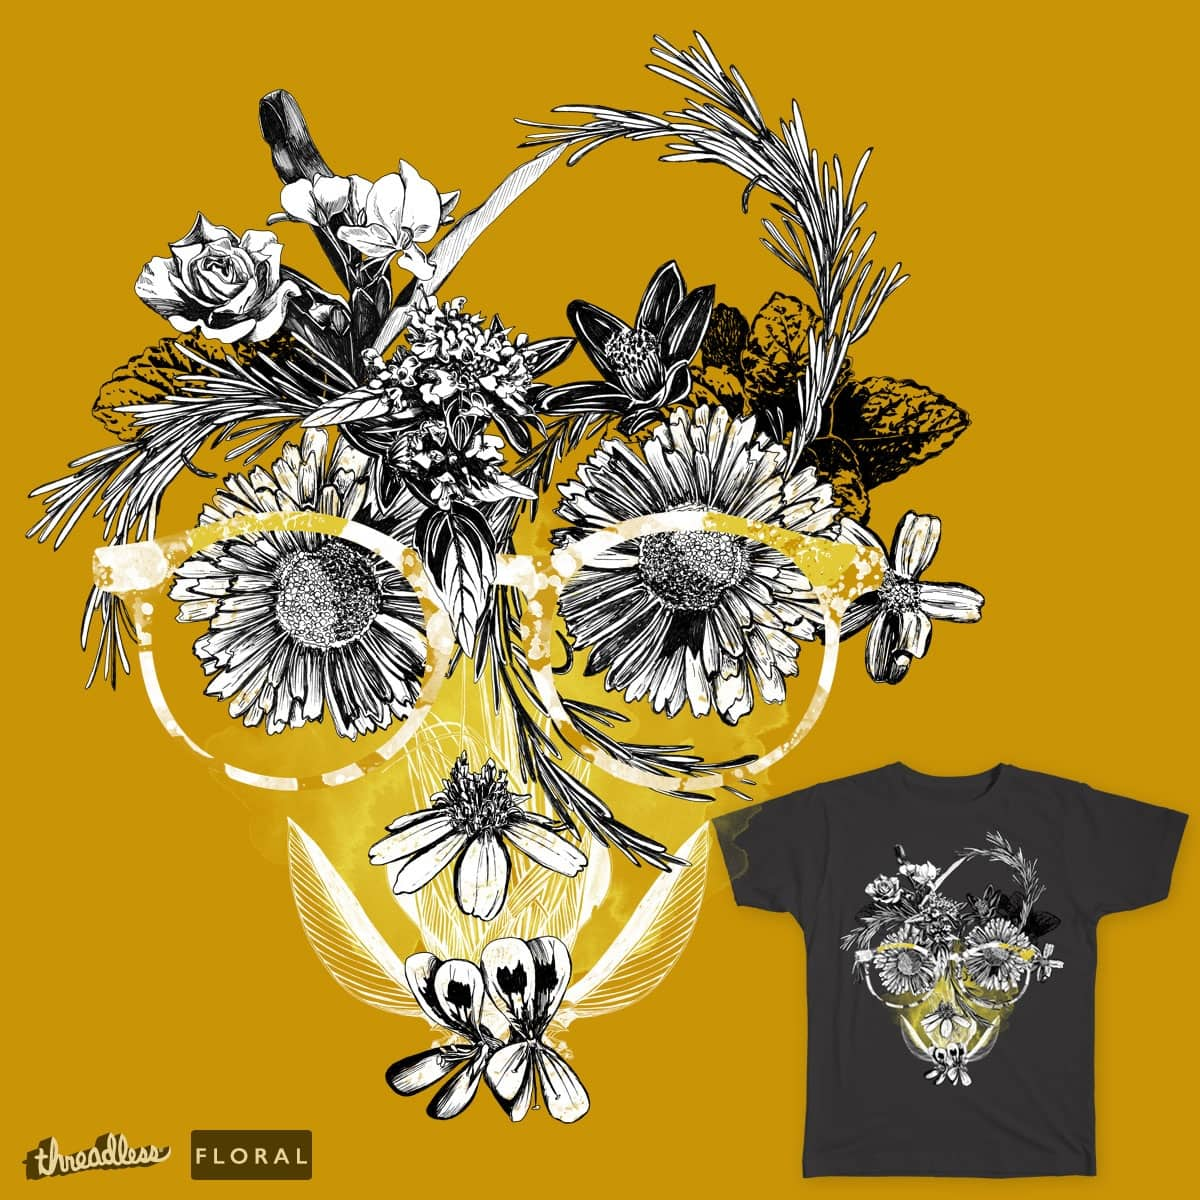 floral arrangement by minimoshout on Threadless